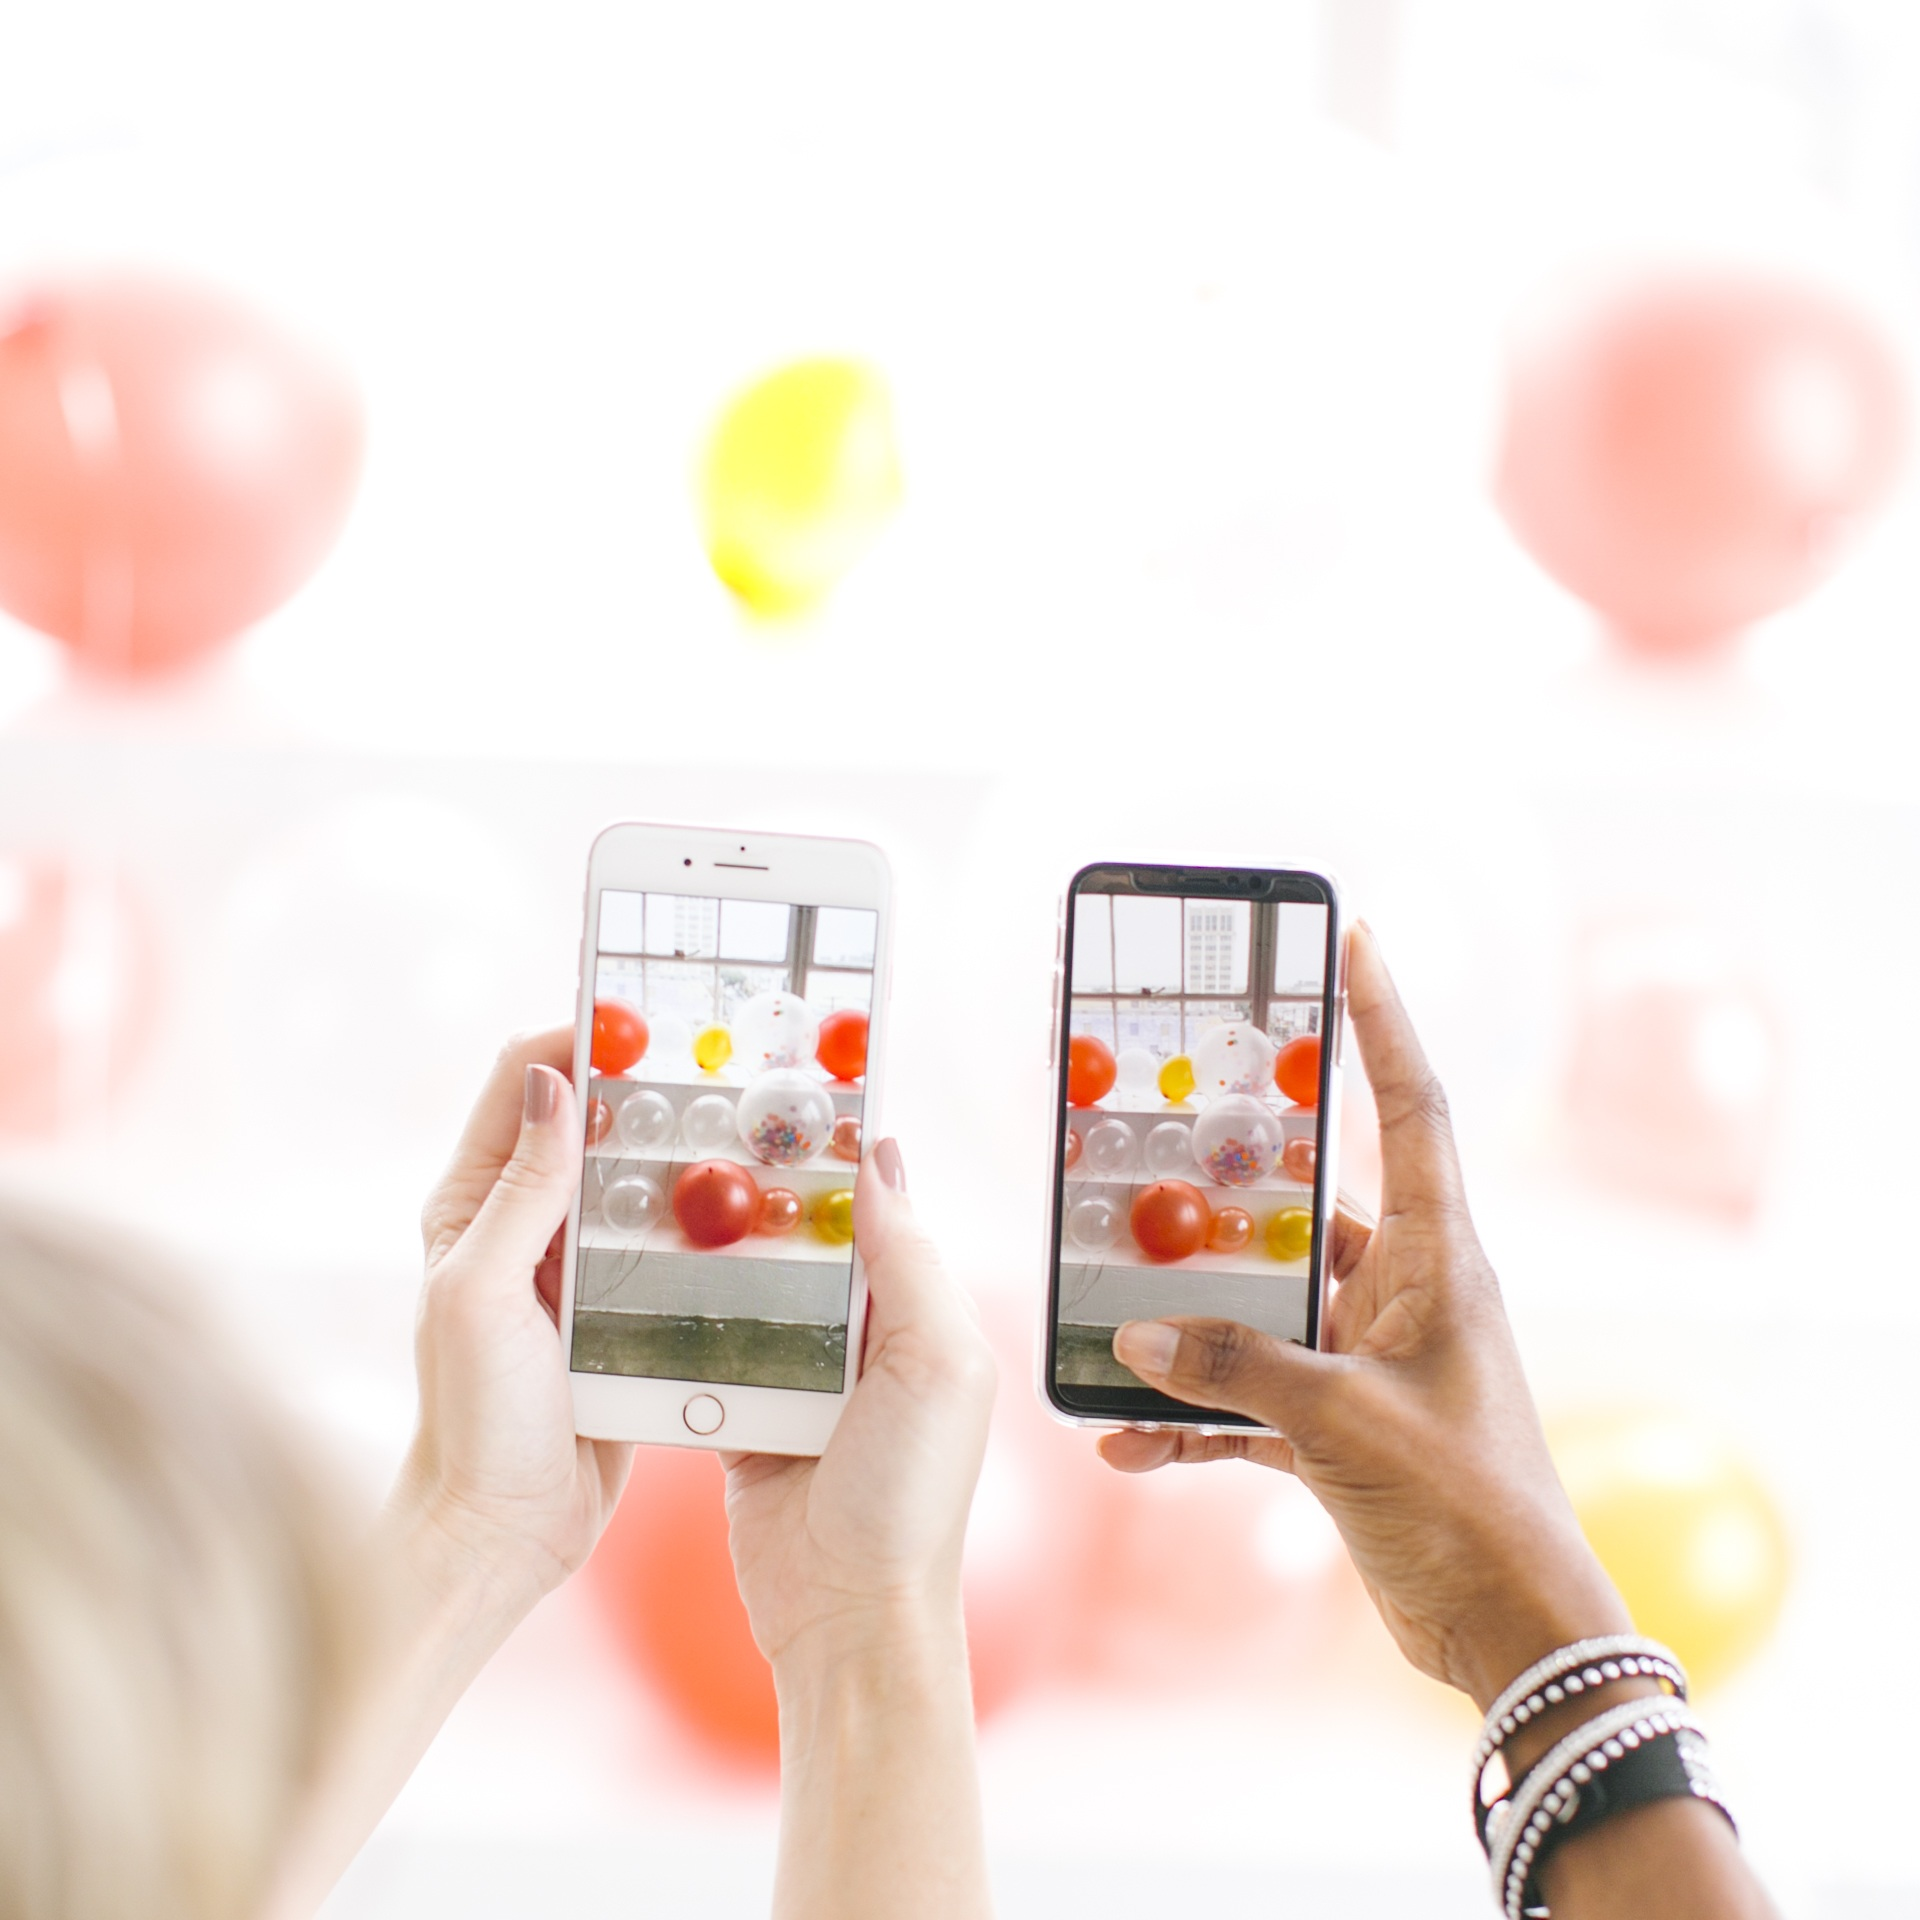 BEGINNER PHOTOGRAPHY CLASS - Learn how to use your phone to capture better everyday pictures. From selfies to lifestyle images, you'll learn all the tricks to use your phone like a pro